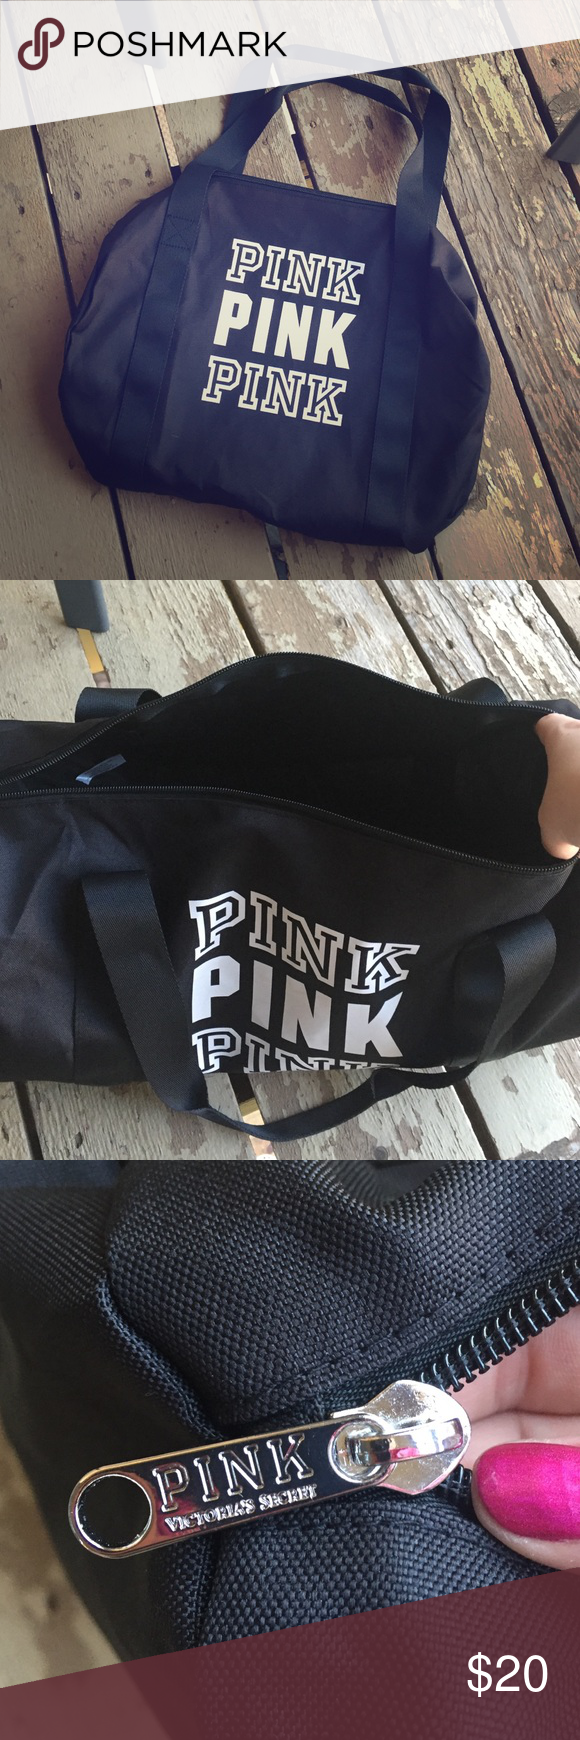 """PINK VS Black Duffle Bag Super cute bag- perfect for a weekend trip! Dimensions are 18""""x15""""x9"""". Brand new! PINK Victoria's Secret Bags"""